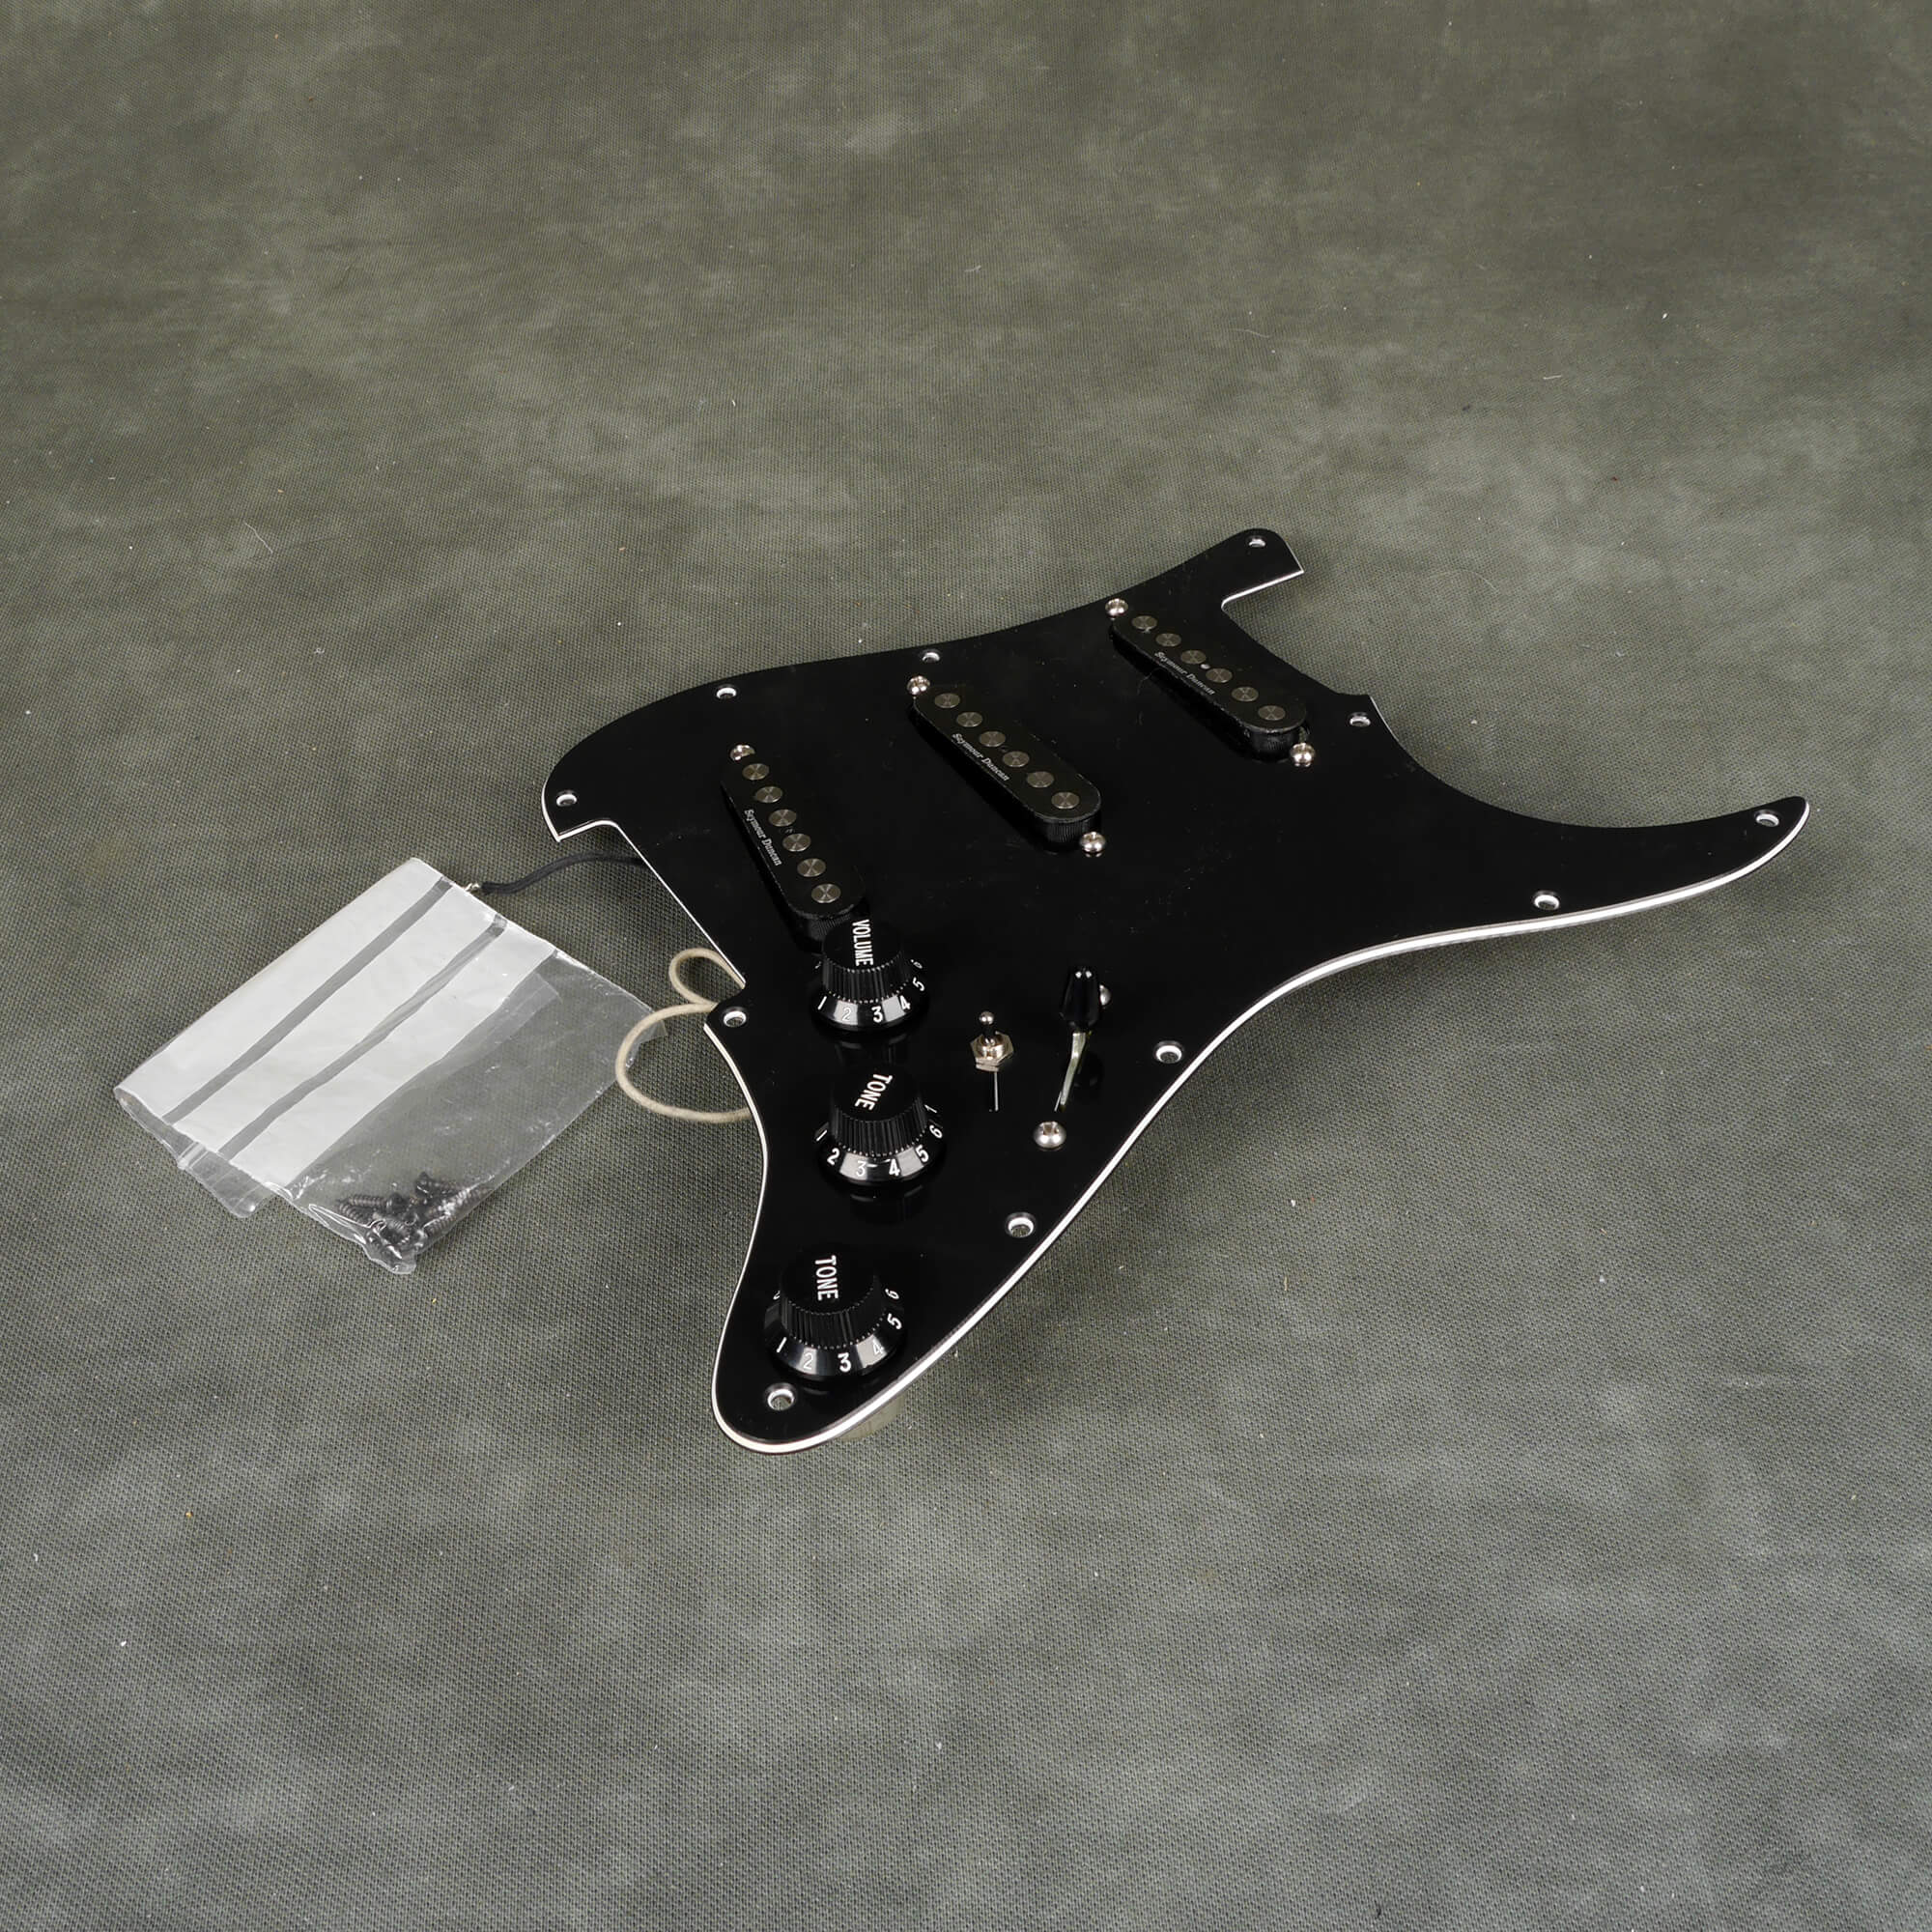 Seymour Duncan SSL4 Quarter Pound Strat Loaded Pickguard - Black - 2nd Hand